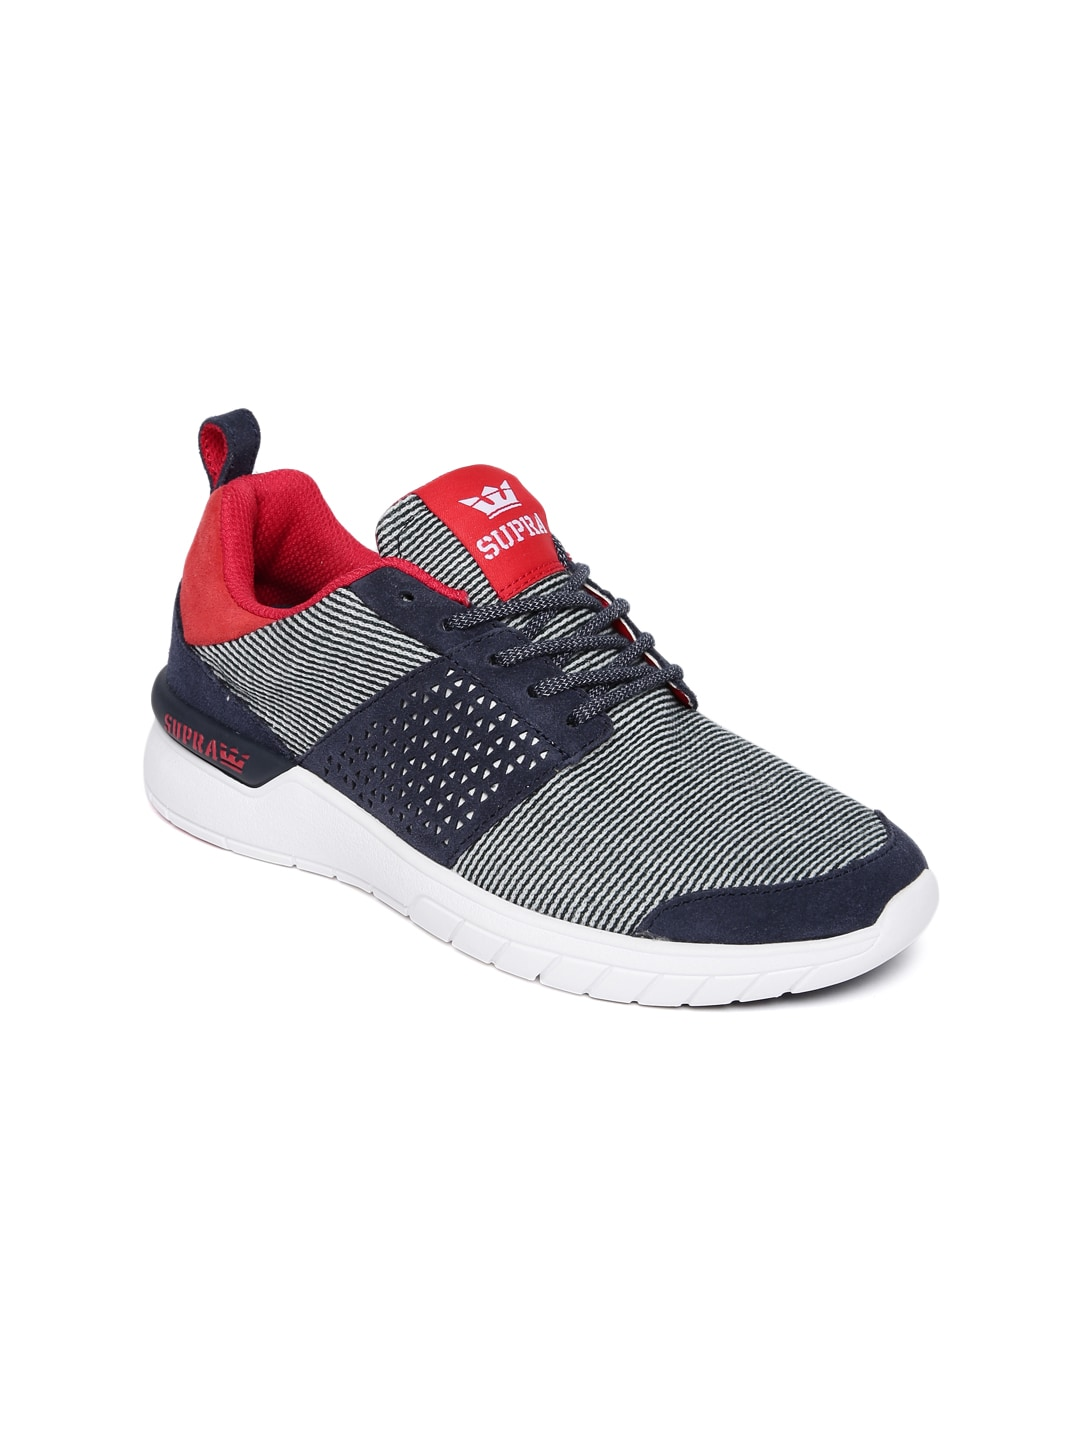 Supra - Exclusive Supra Online Store in India at Myntra 6ee773060